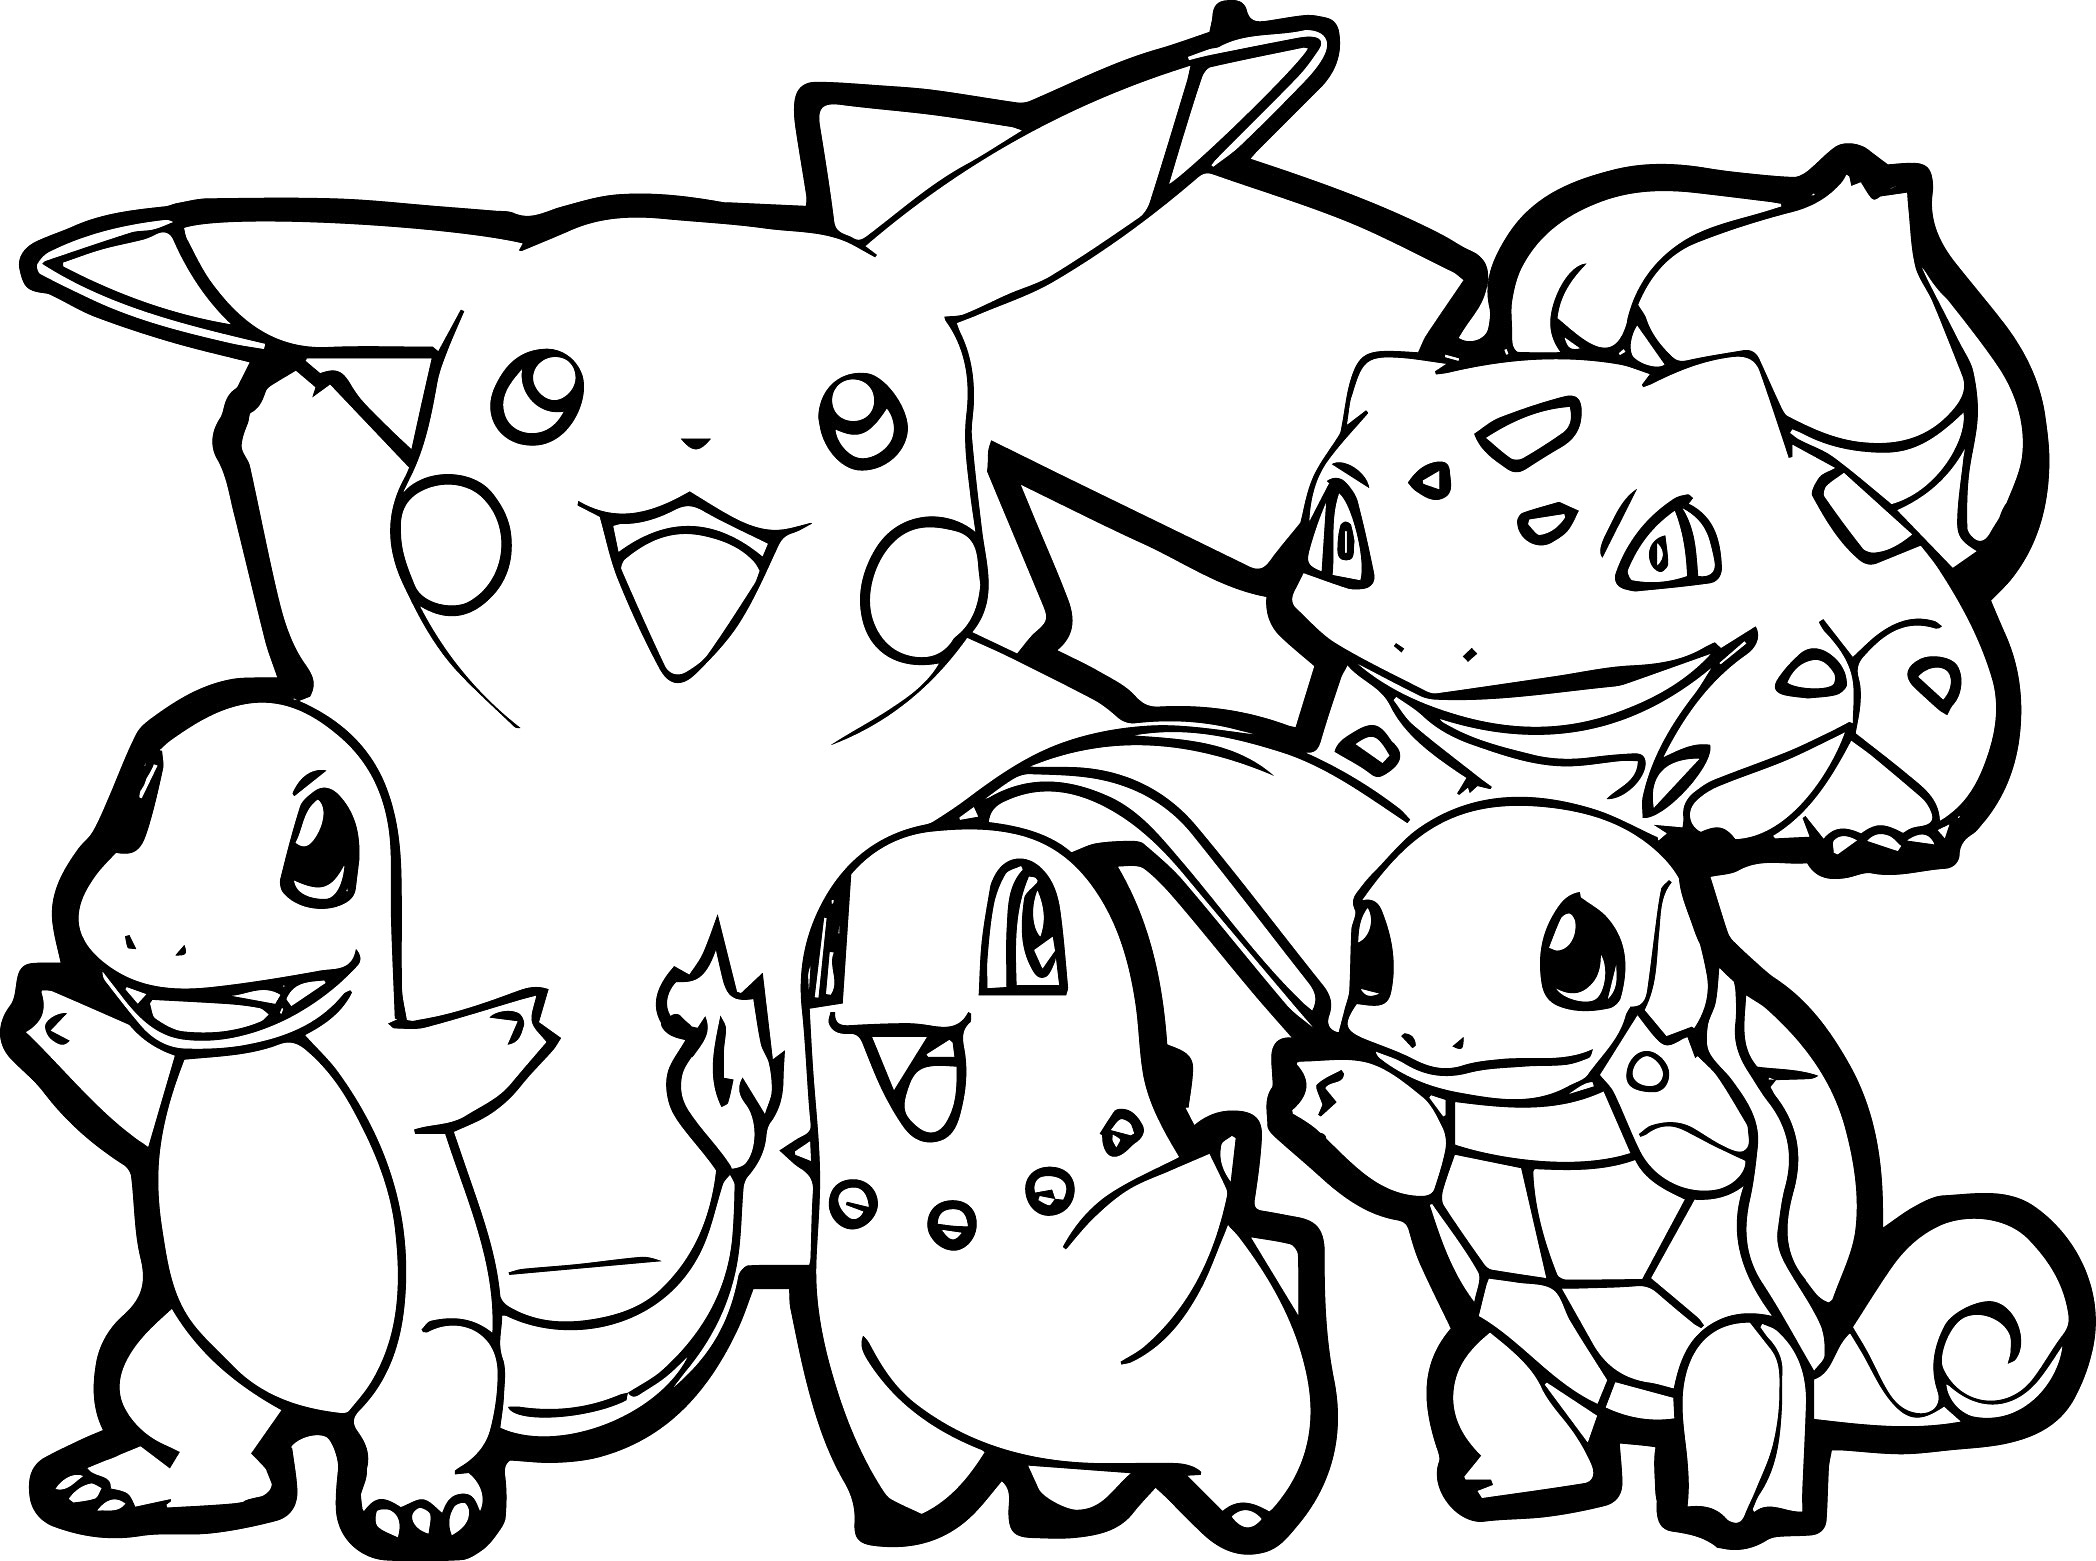 Pokemon Coloring Pages to Print 3m - To print for your project